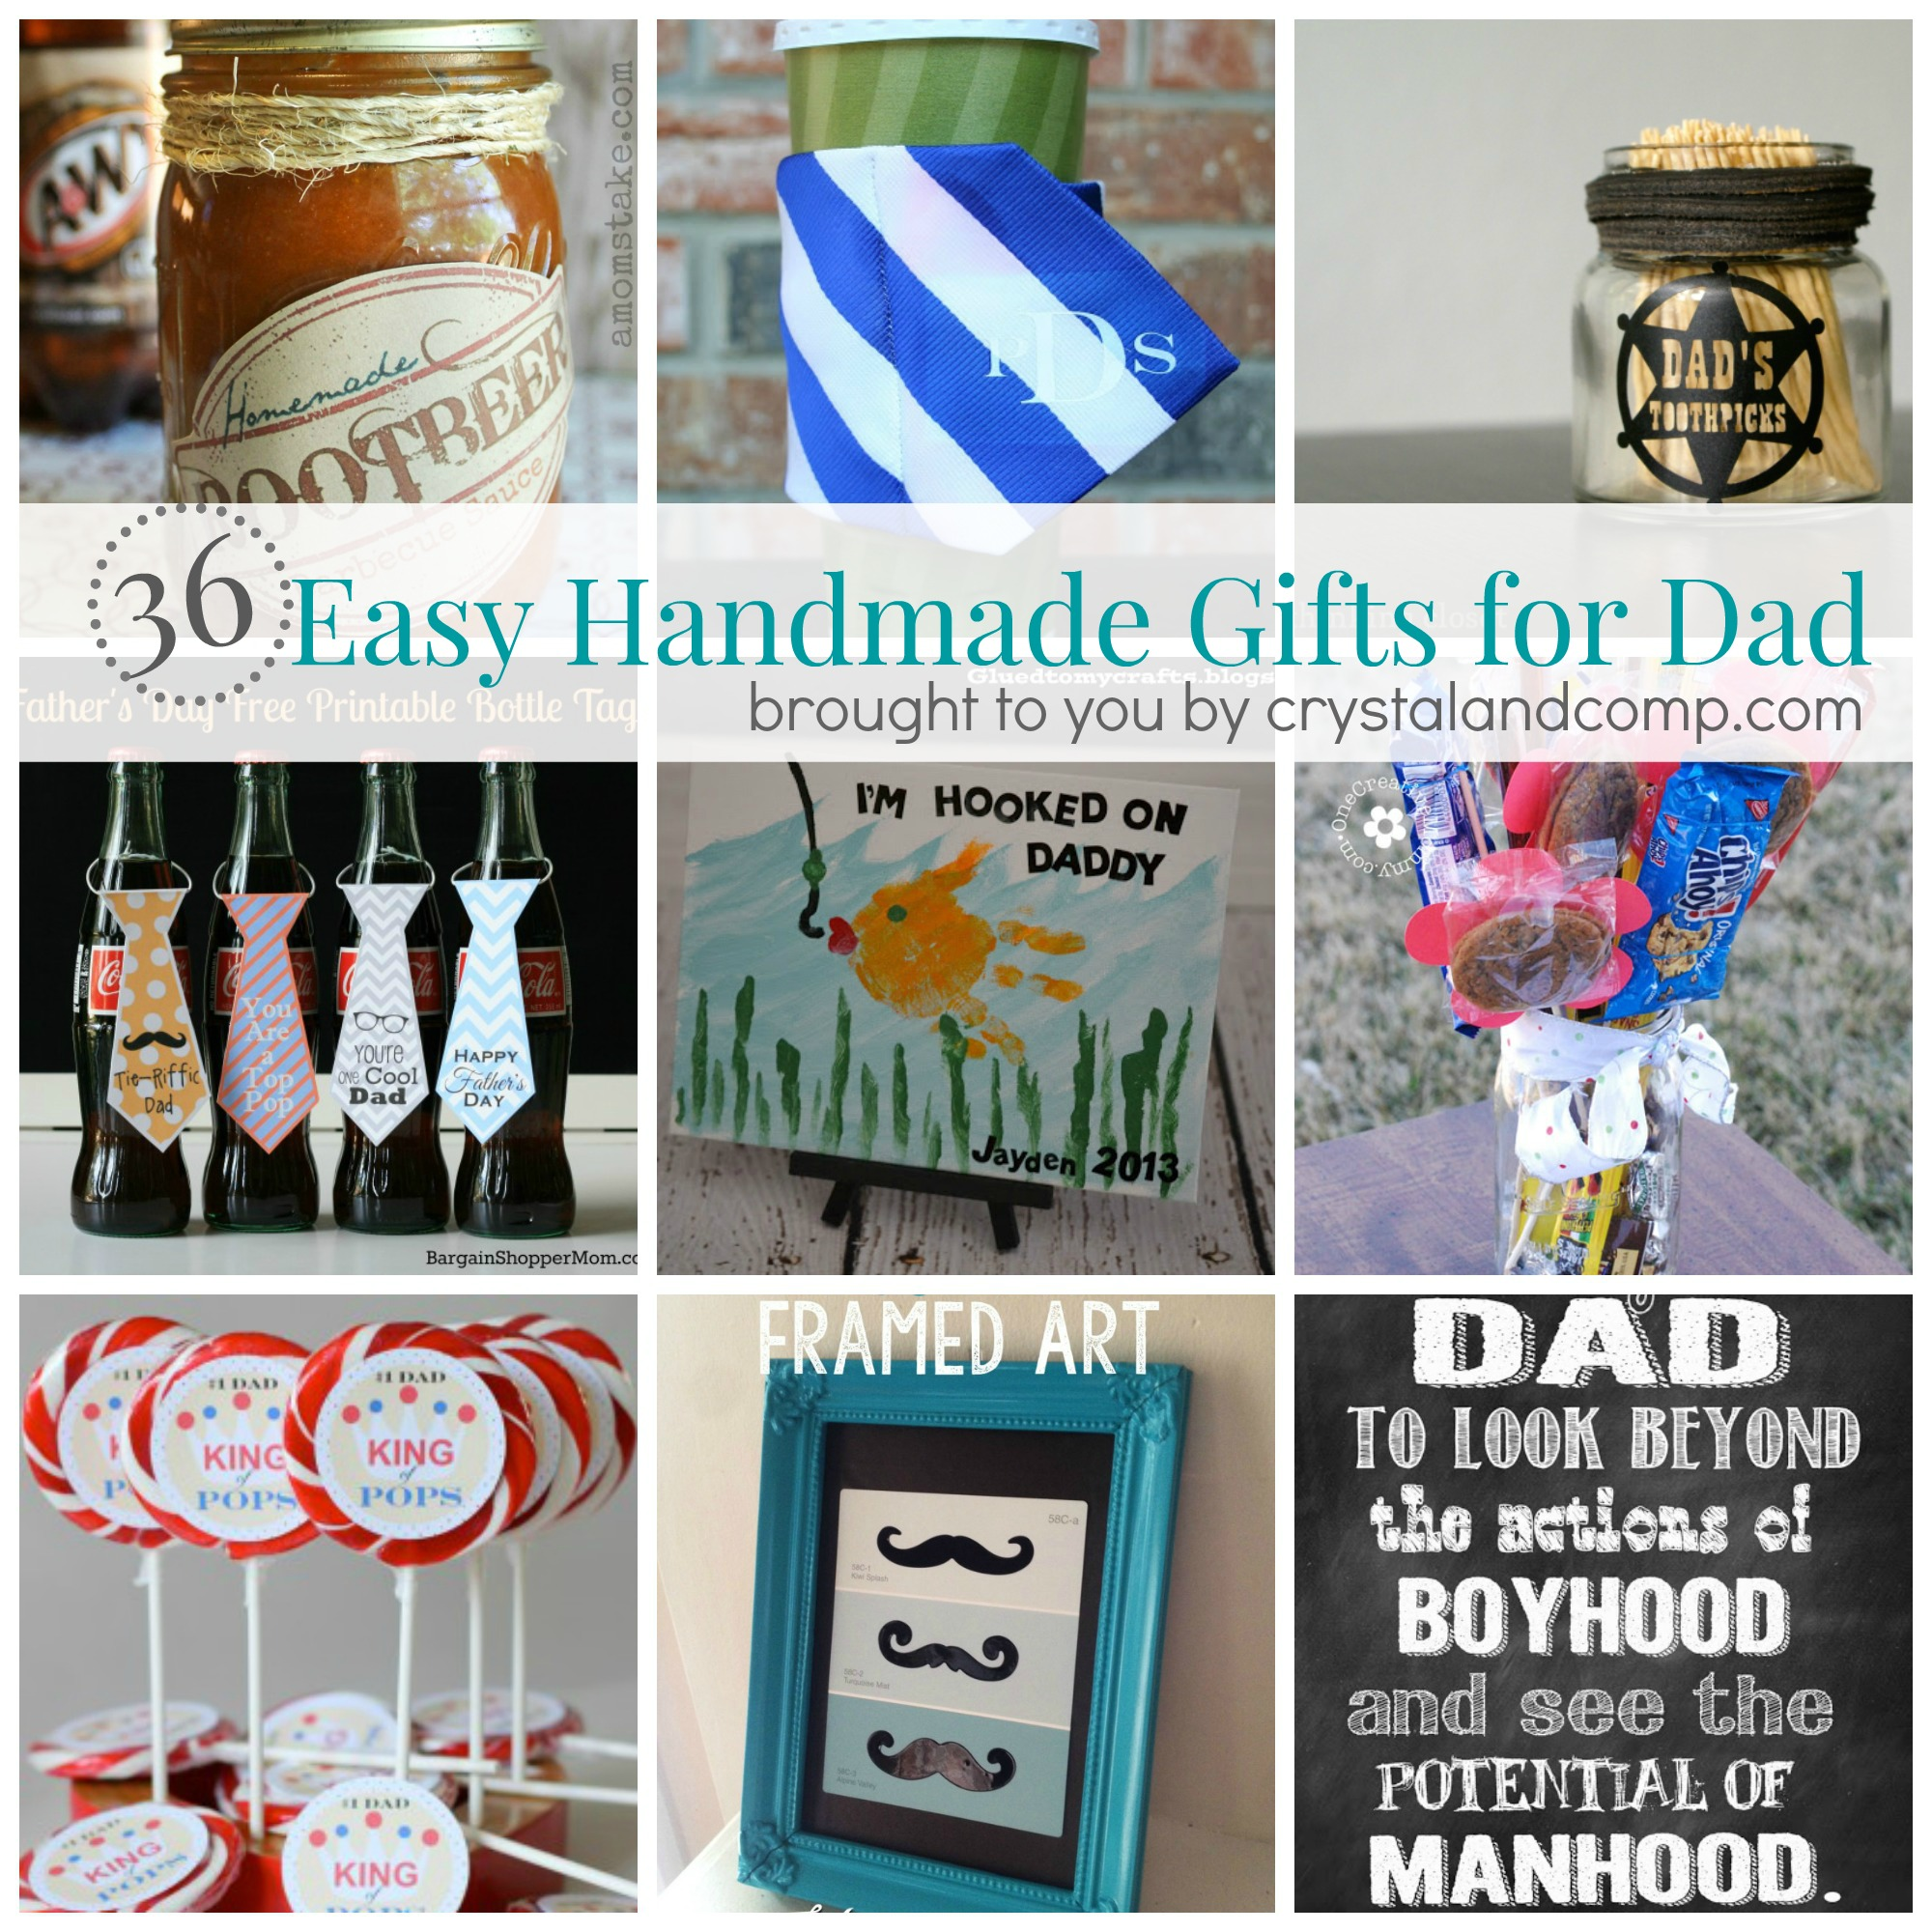 Homemade christmas gifts ideas for kids - Easy Homemade Gift Ideas For Dad